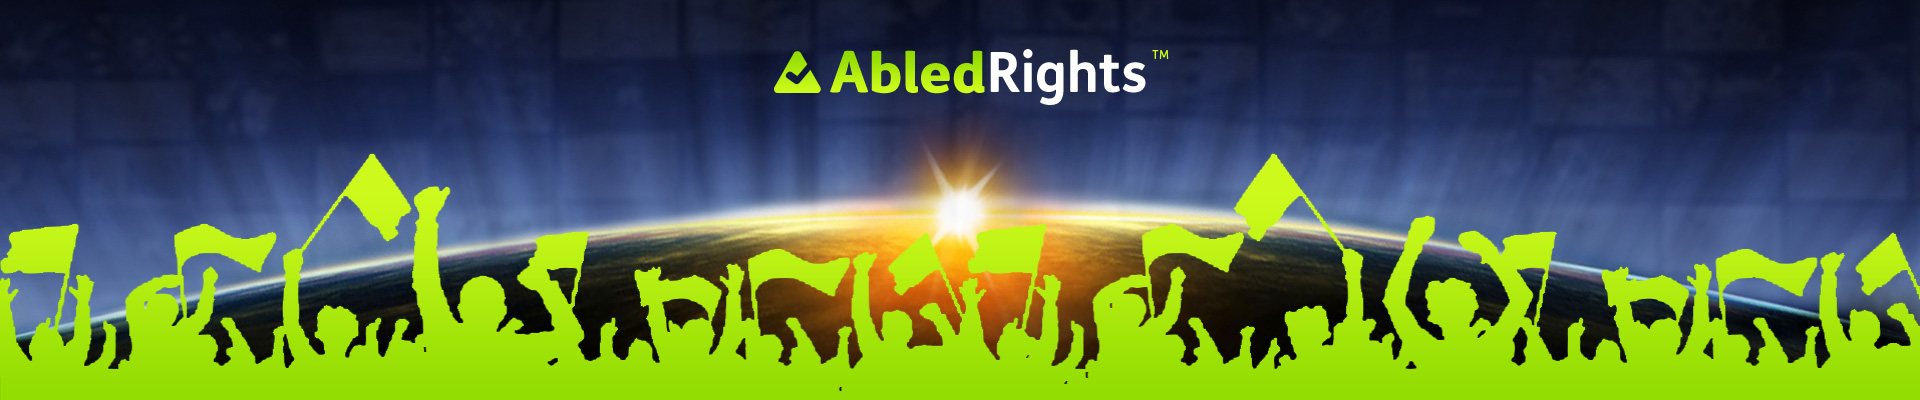 AbledRights Page Banner shows gradient green silhouettes of protesters waving flags and holding fists aloft against a photo showing sunrise over the curve of the Earth as seen from space with the AbledRights logo above it.